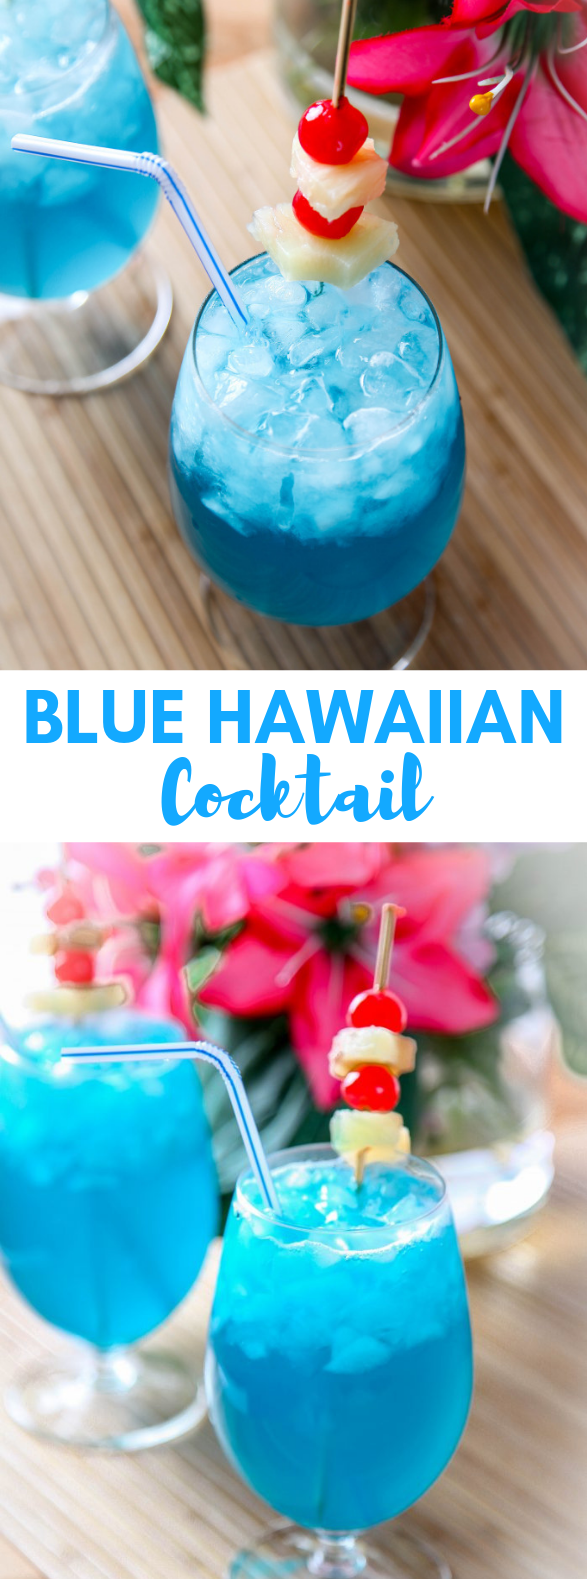 BLUE HAWAIIAN RECIPE #Cocktail #Summer